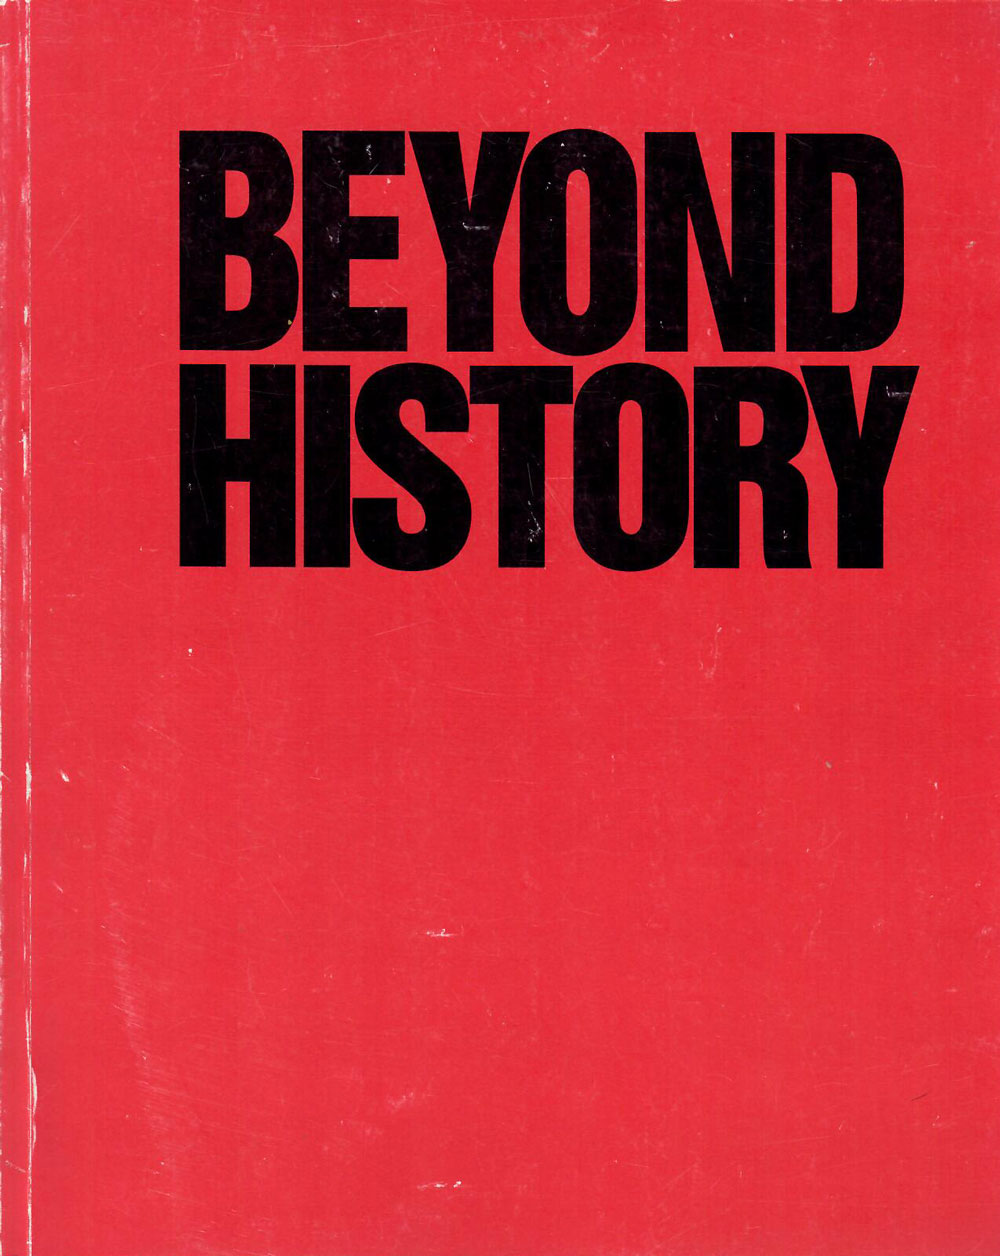 Beyond History catalogue cover